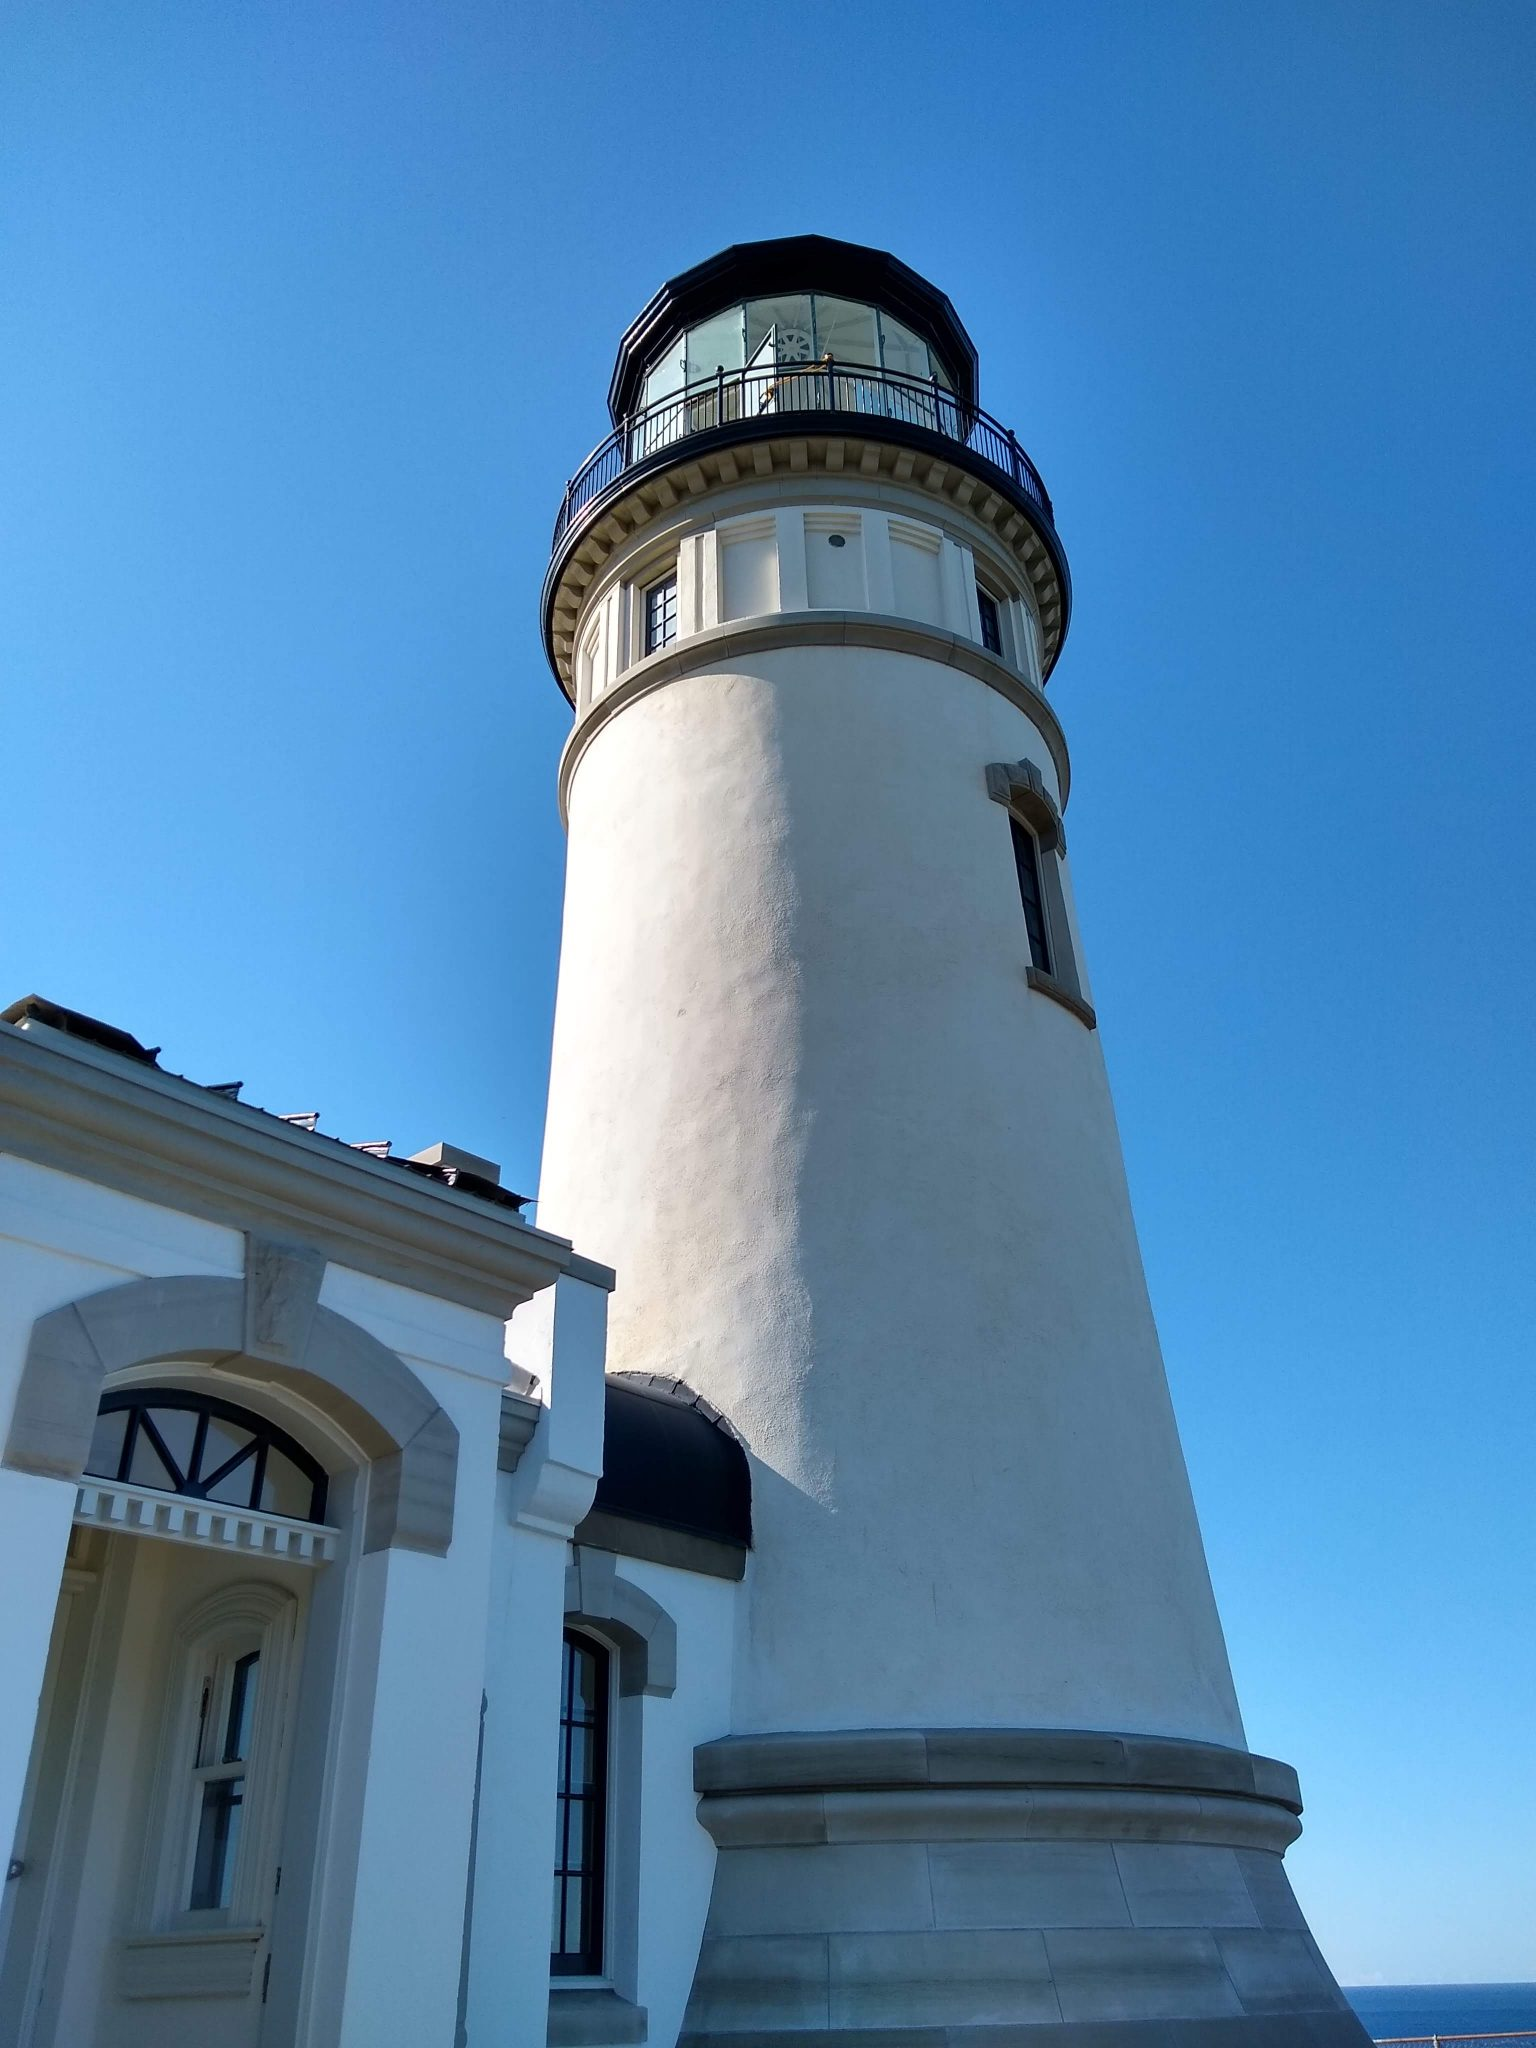 A close up of a bright white lighthouse built in 1898. There is blue sky behind it and a bit of the ocean is visible.